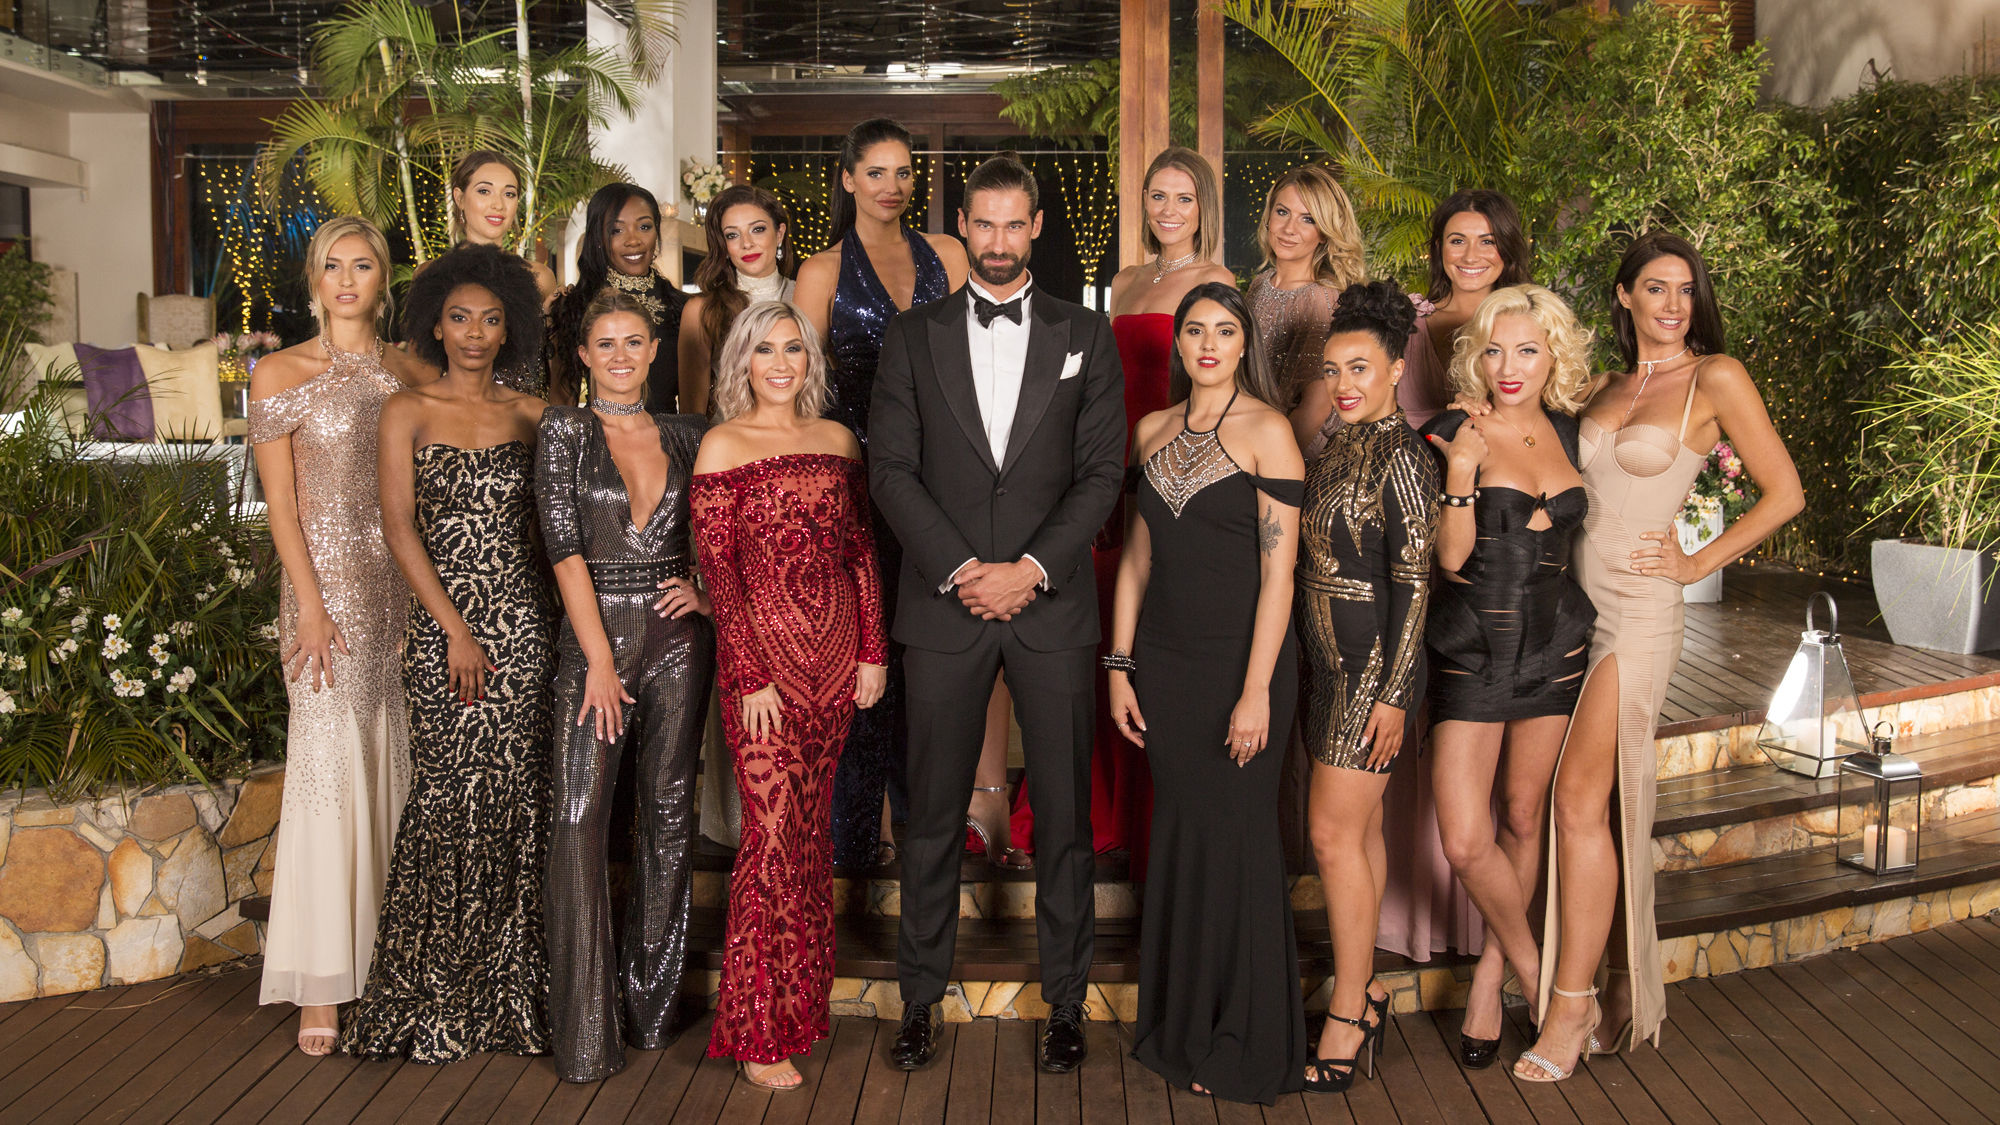 When is the finale of The Bachelor and how many episodes are left?